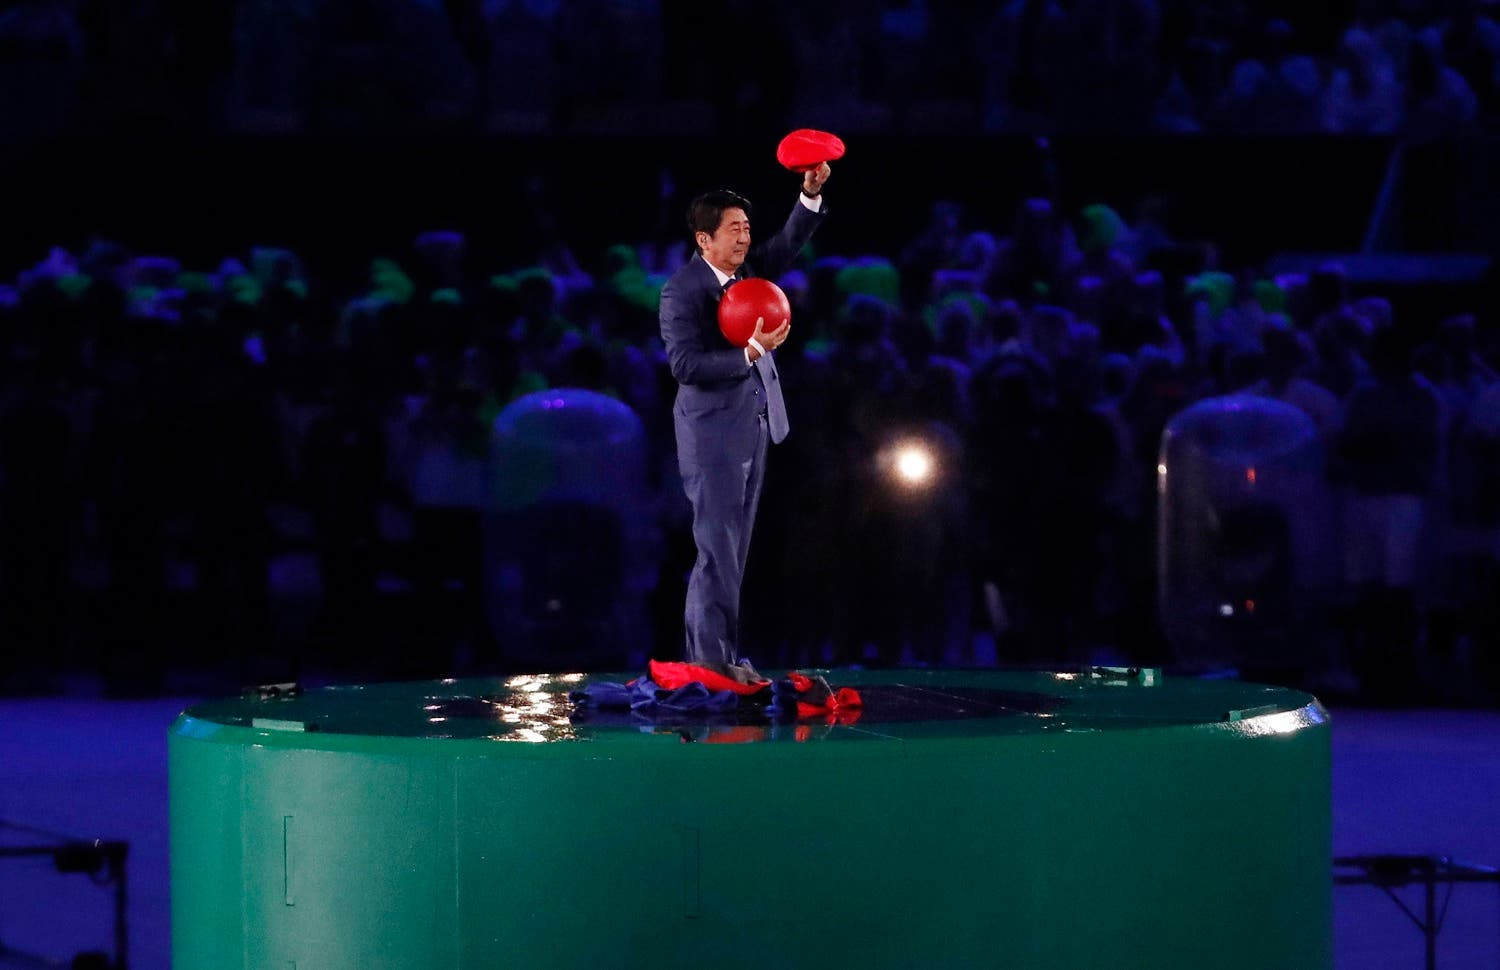 Japan's Prime Minister Shinzo Abe waves during the closing ceremony for the Summer Olympics in Rio de Janeiro, Brazil, Sunday, Aug. 21, 2016. (AP)